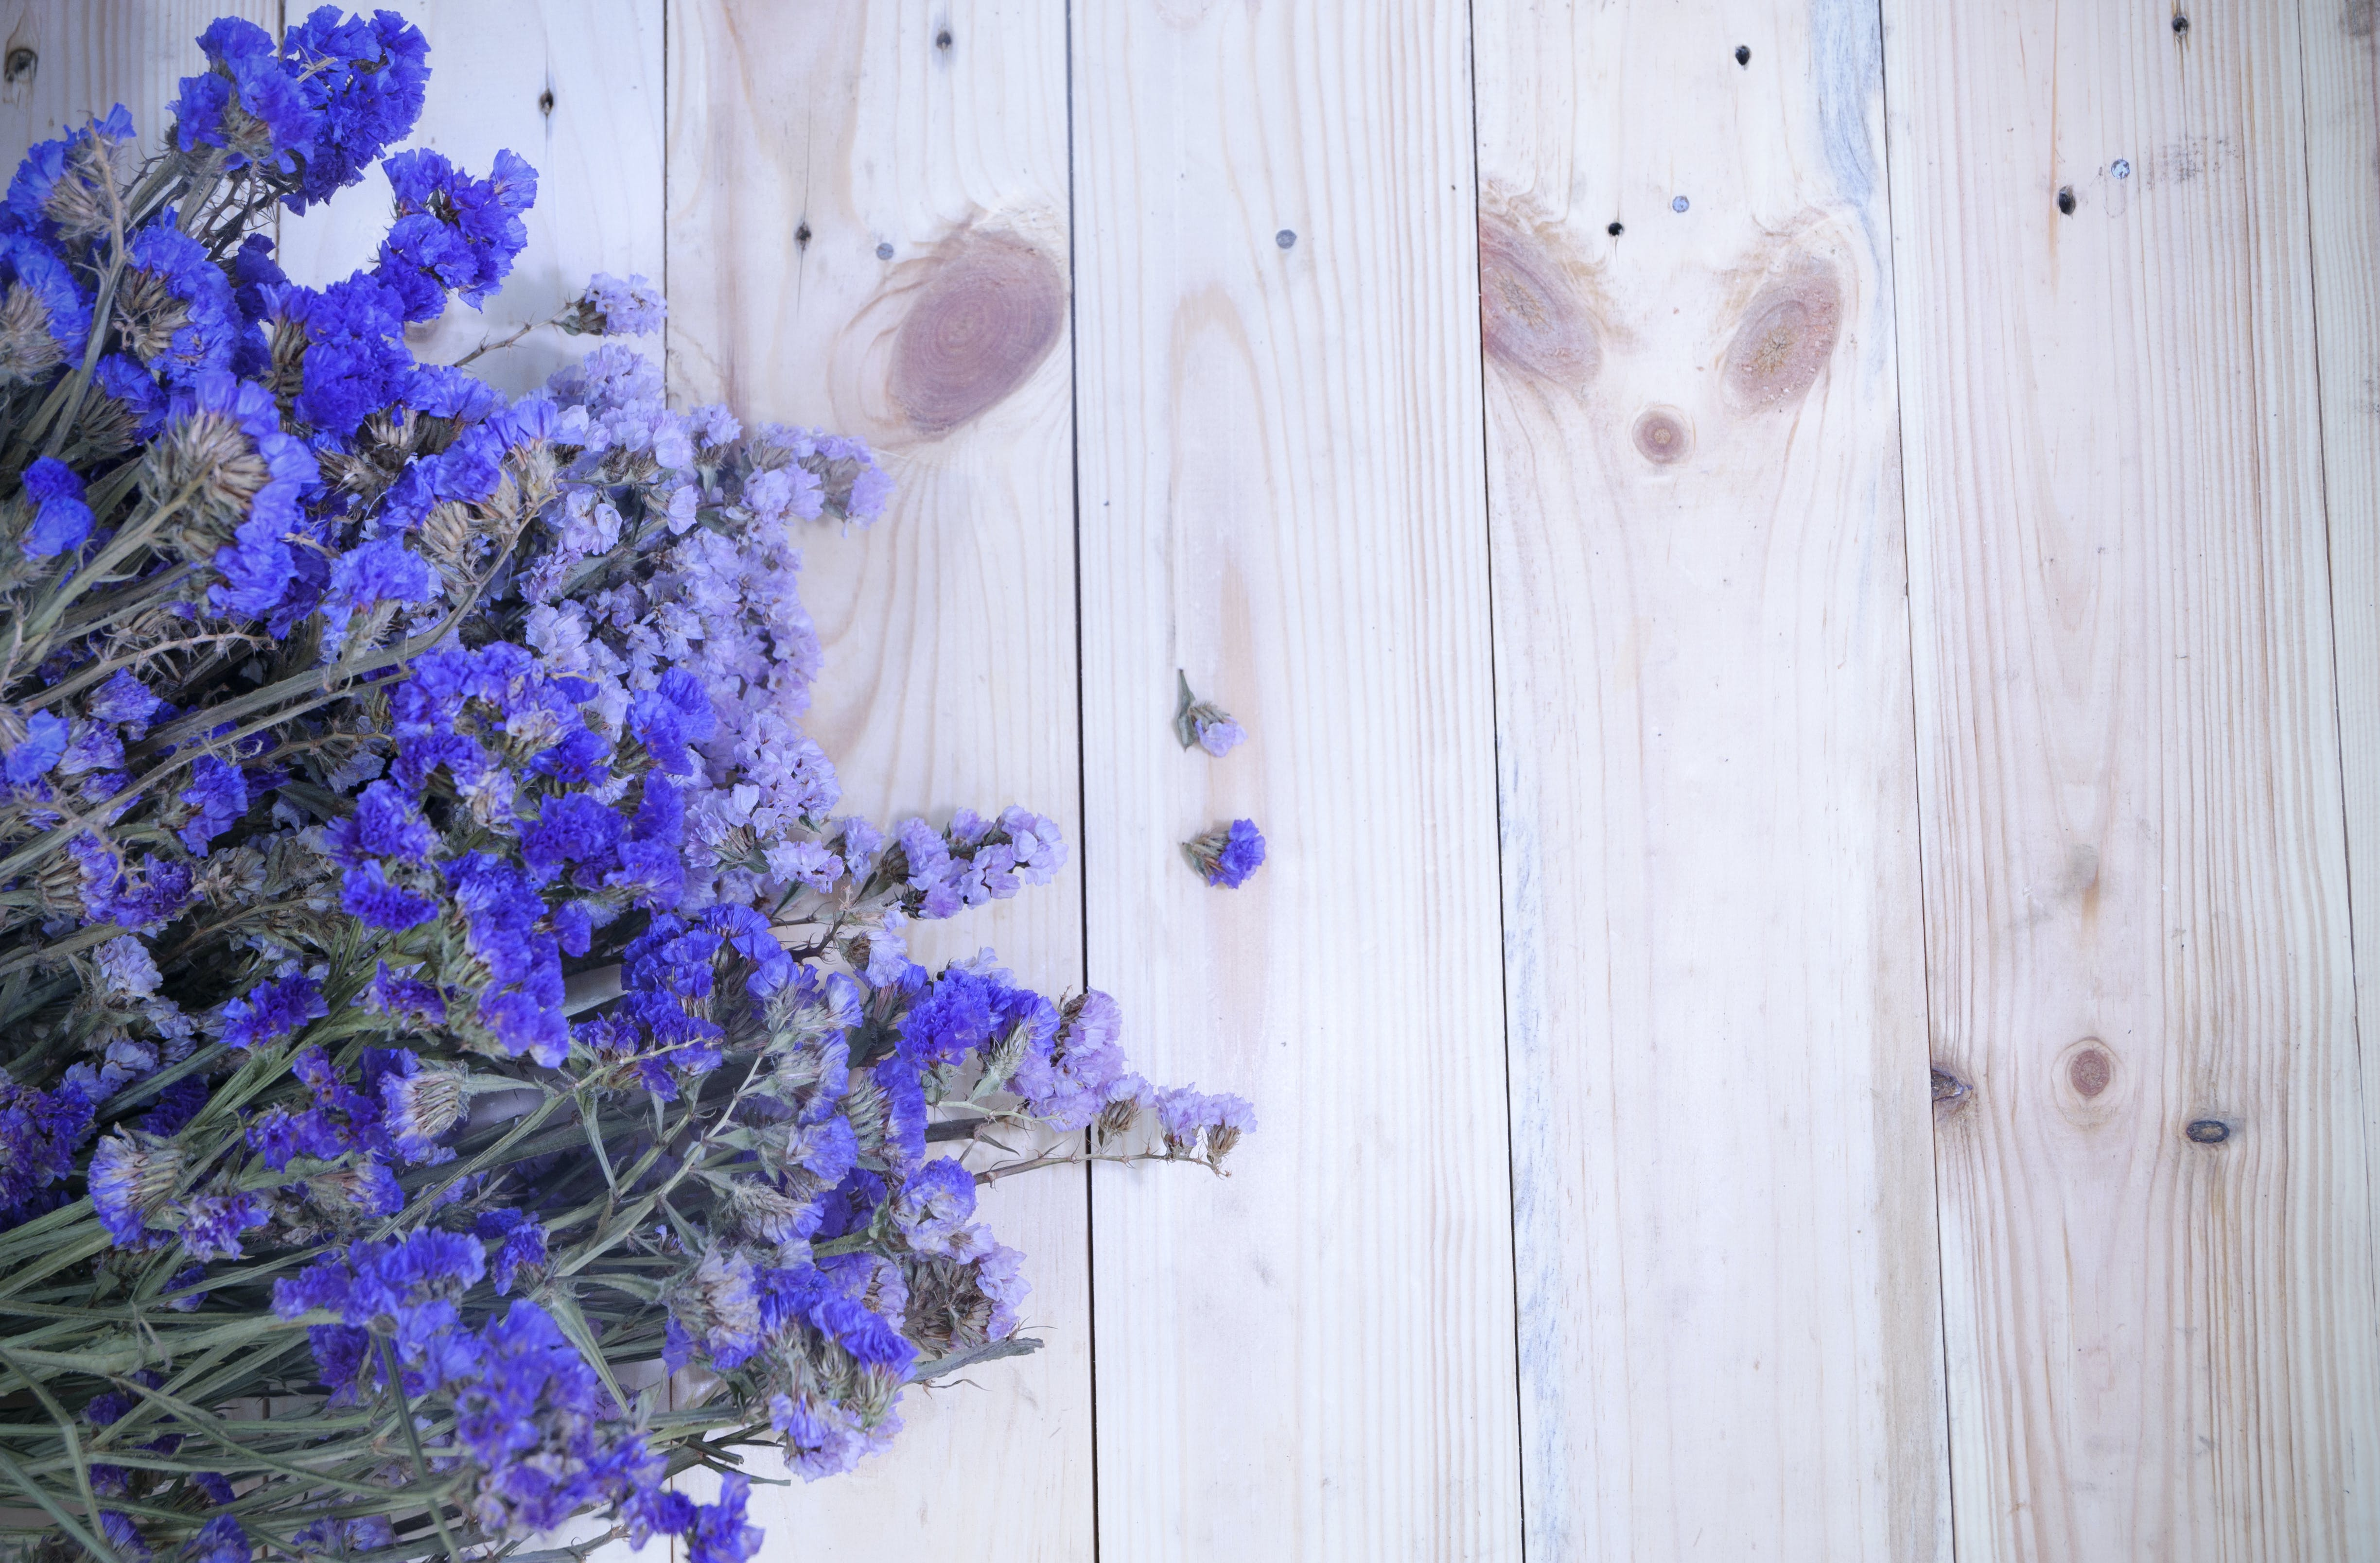 Flat Lay Photography of Purple Clustered Flowers on Wood Plank